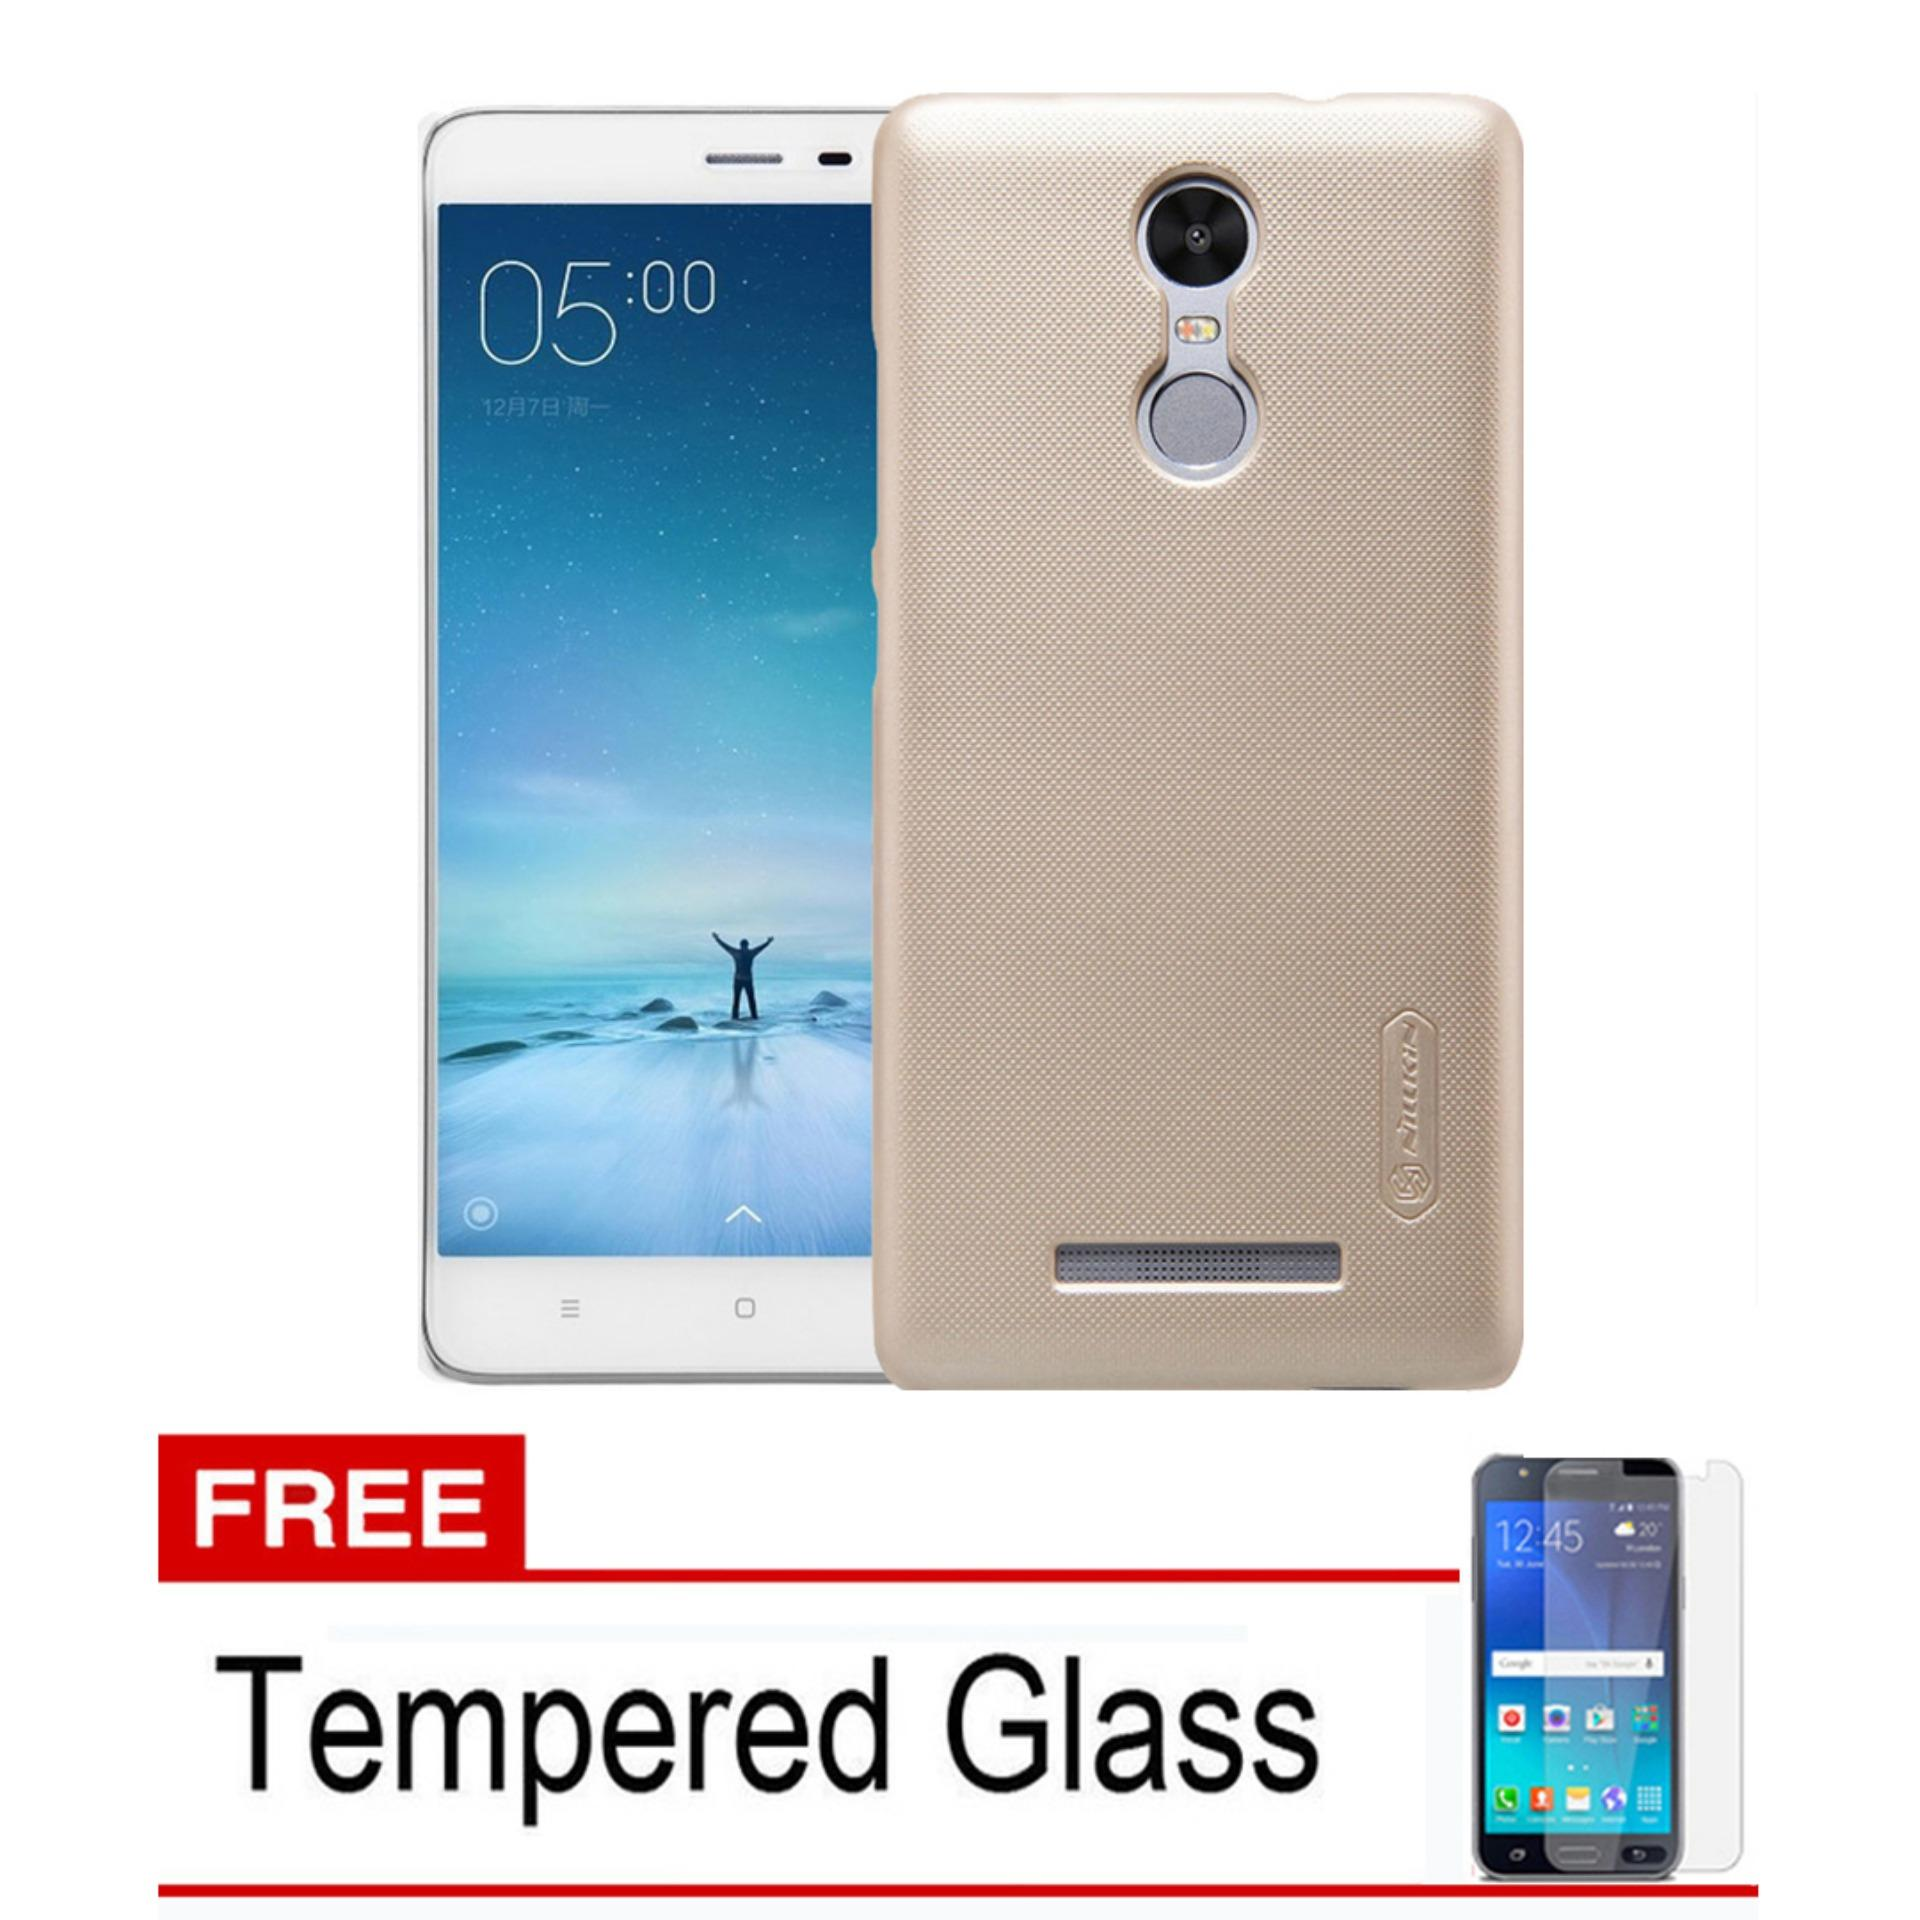 ... 4 Black Source · Nillkin Frosted Shield Hardcase For Xiaomi Redmi Note 2 Gold Free Super Pro Mi Source